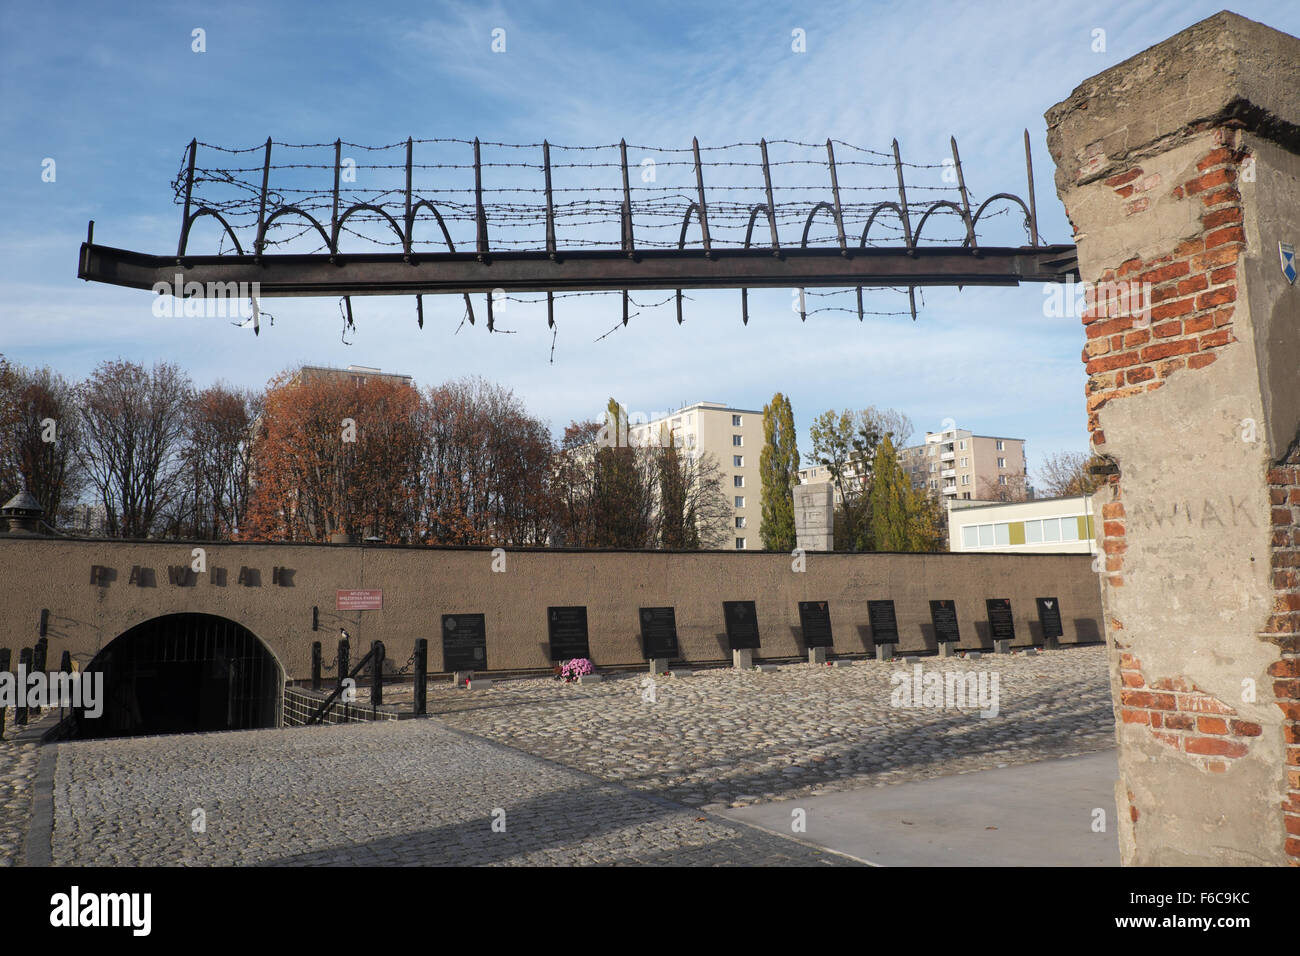 Warsaw Poland - Entrance to the Pawiak prison used by the Germans during WW2 for interrogation, torture and execution - Stock Image